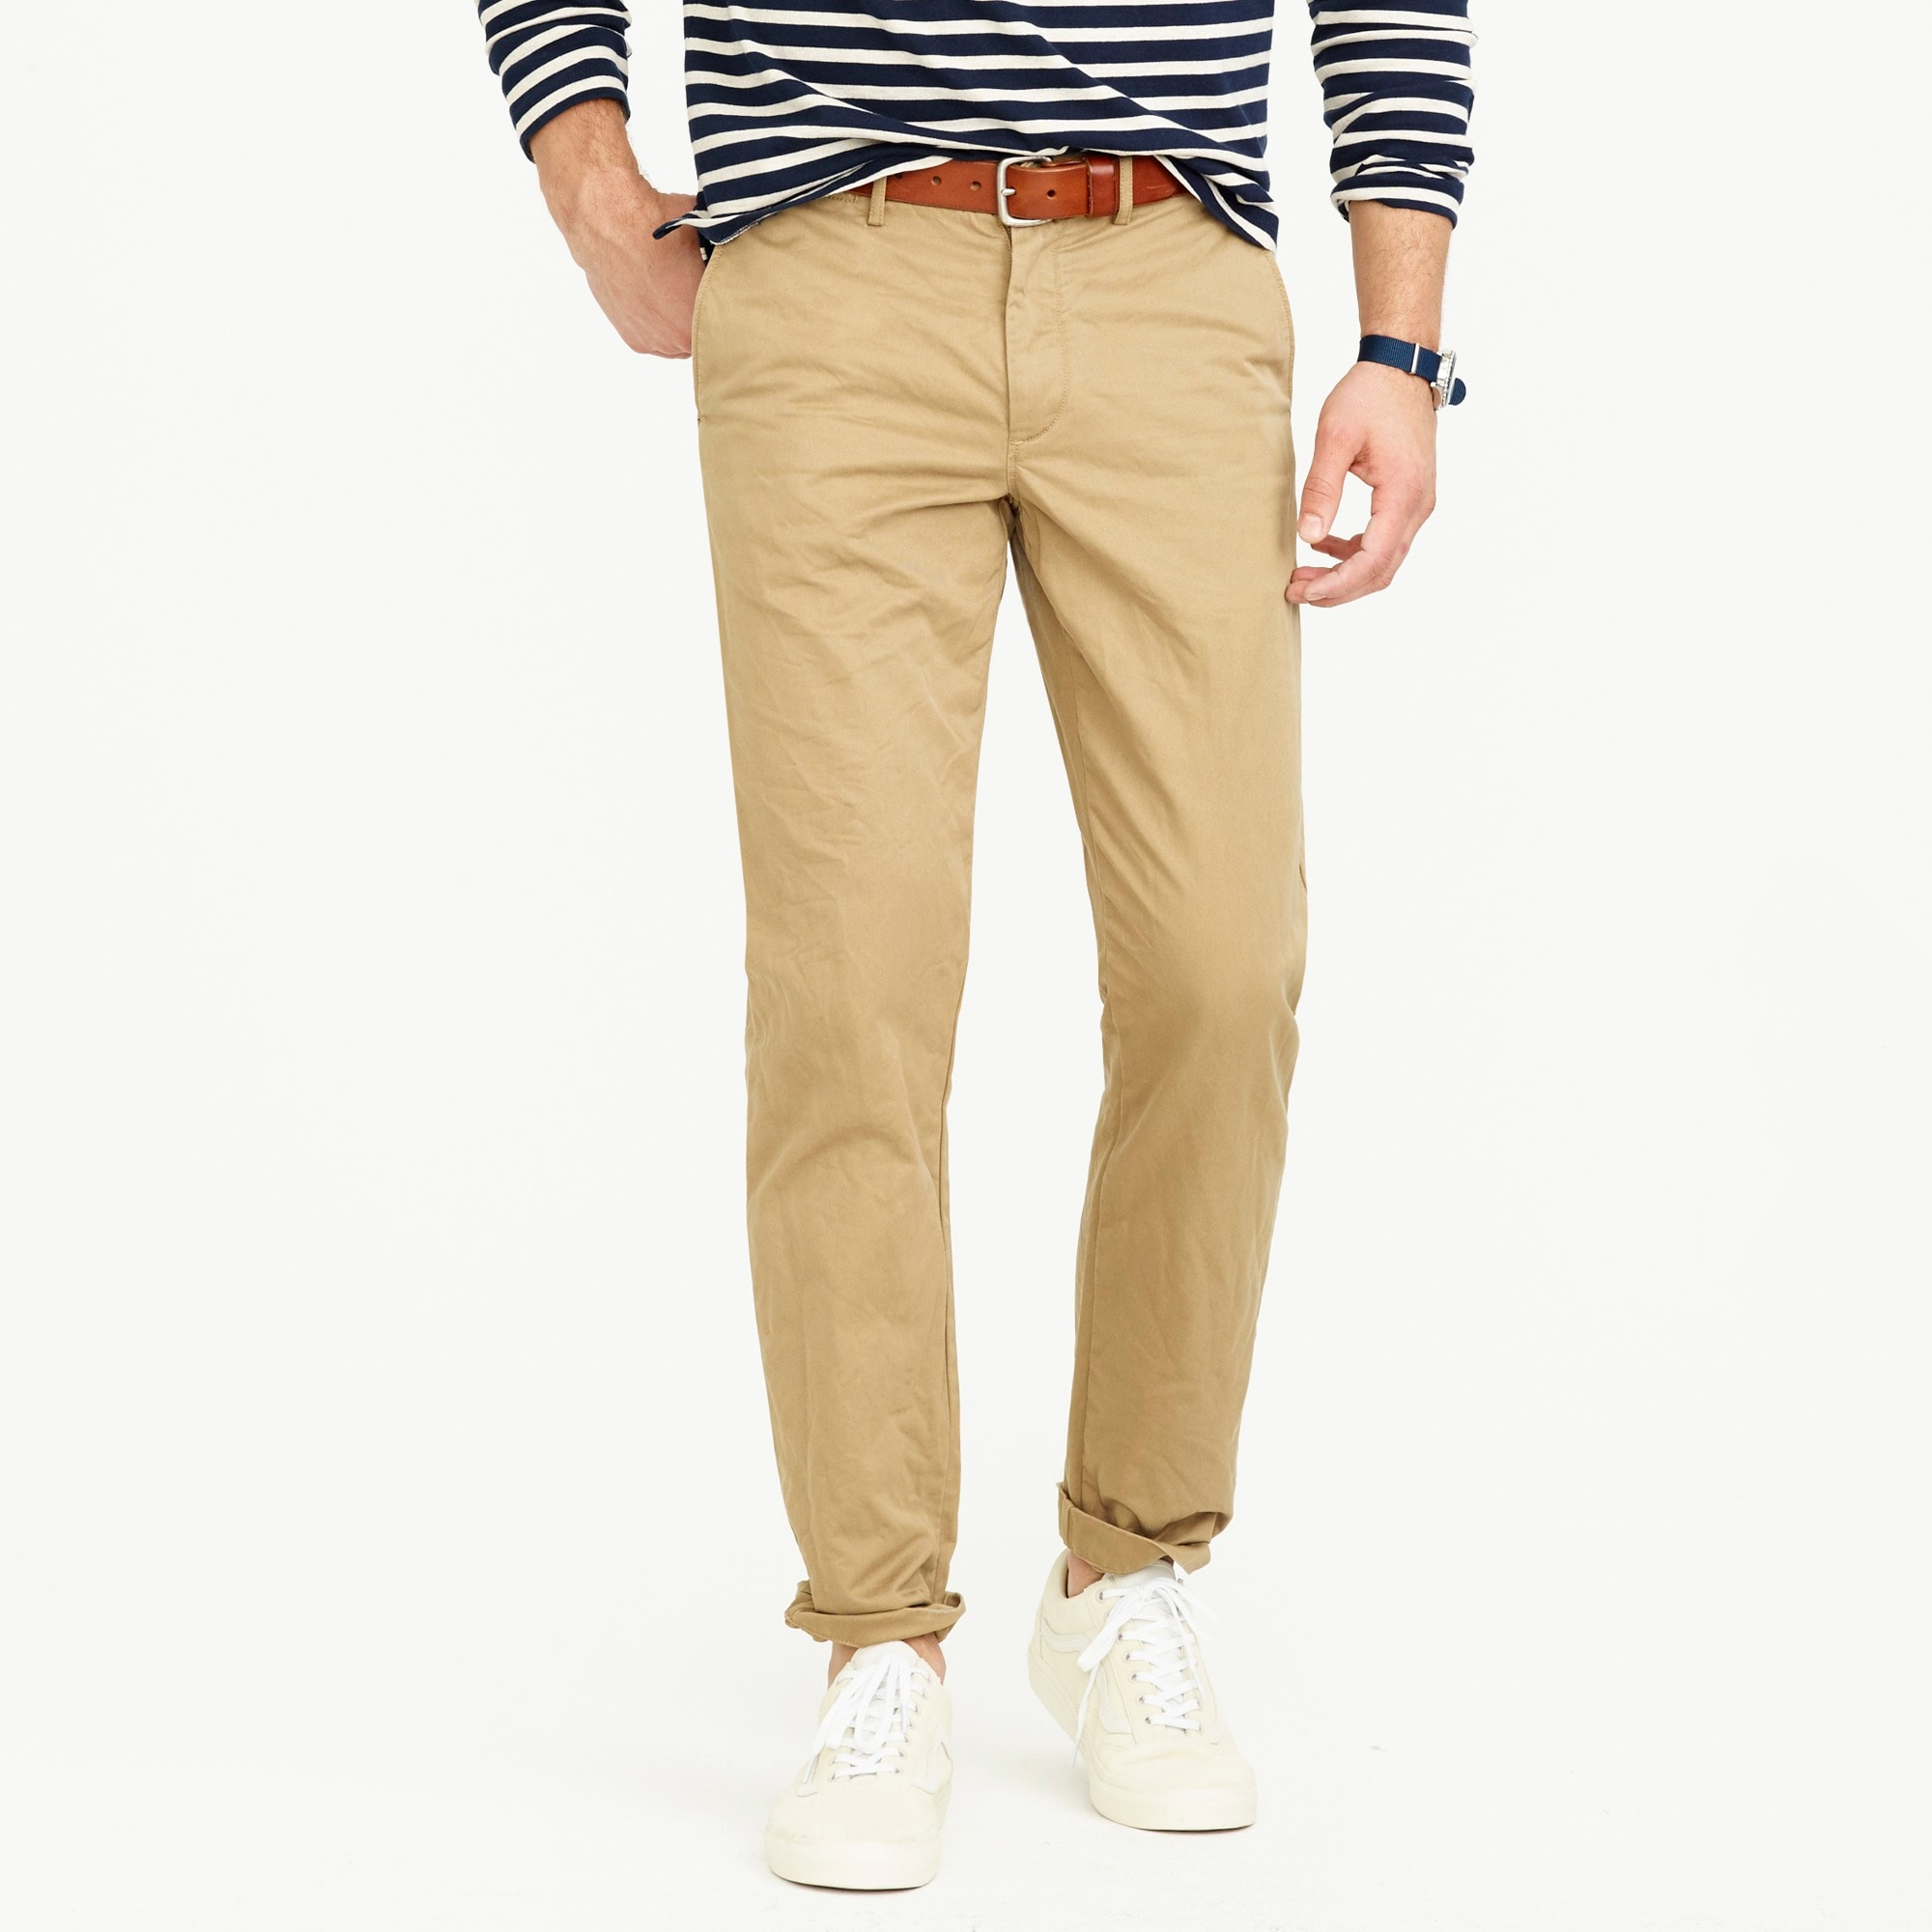 mens 770 Straight-fit pant in Broken-in chino